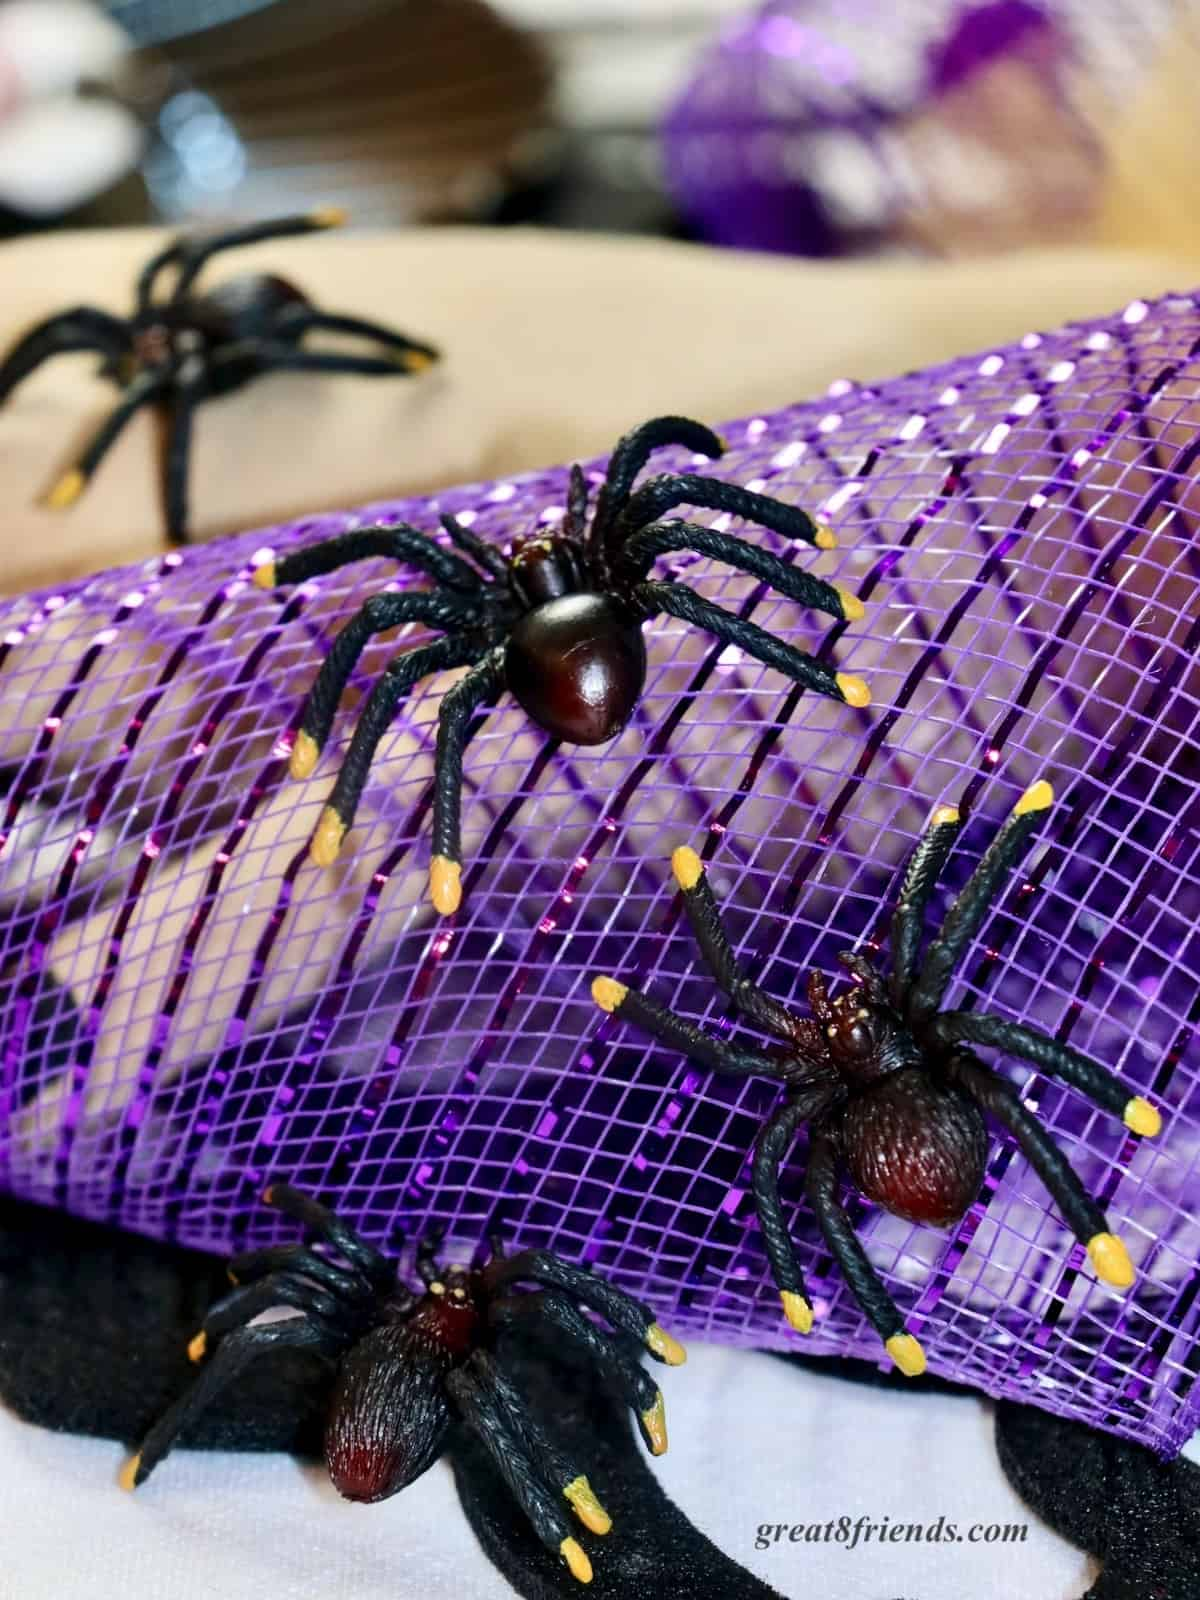 Black plastic spiders crawling on purple mesh.